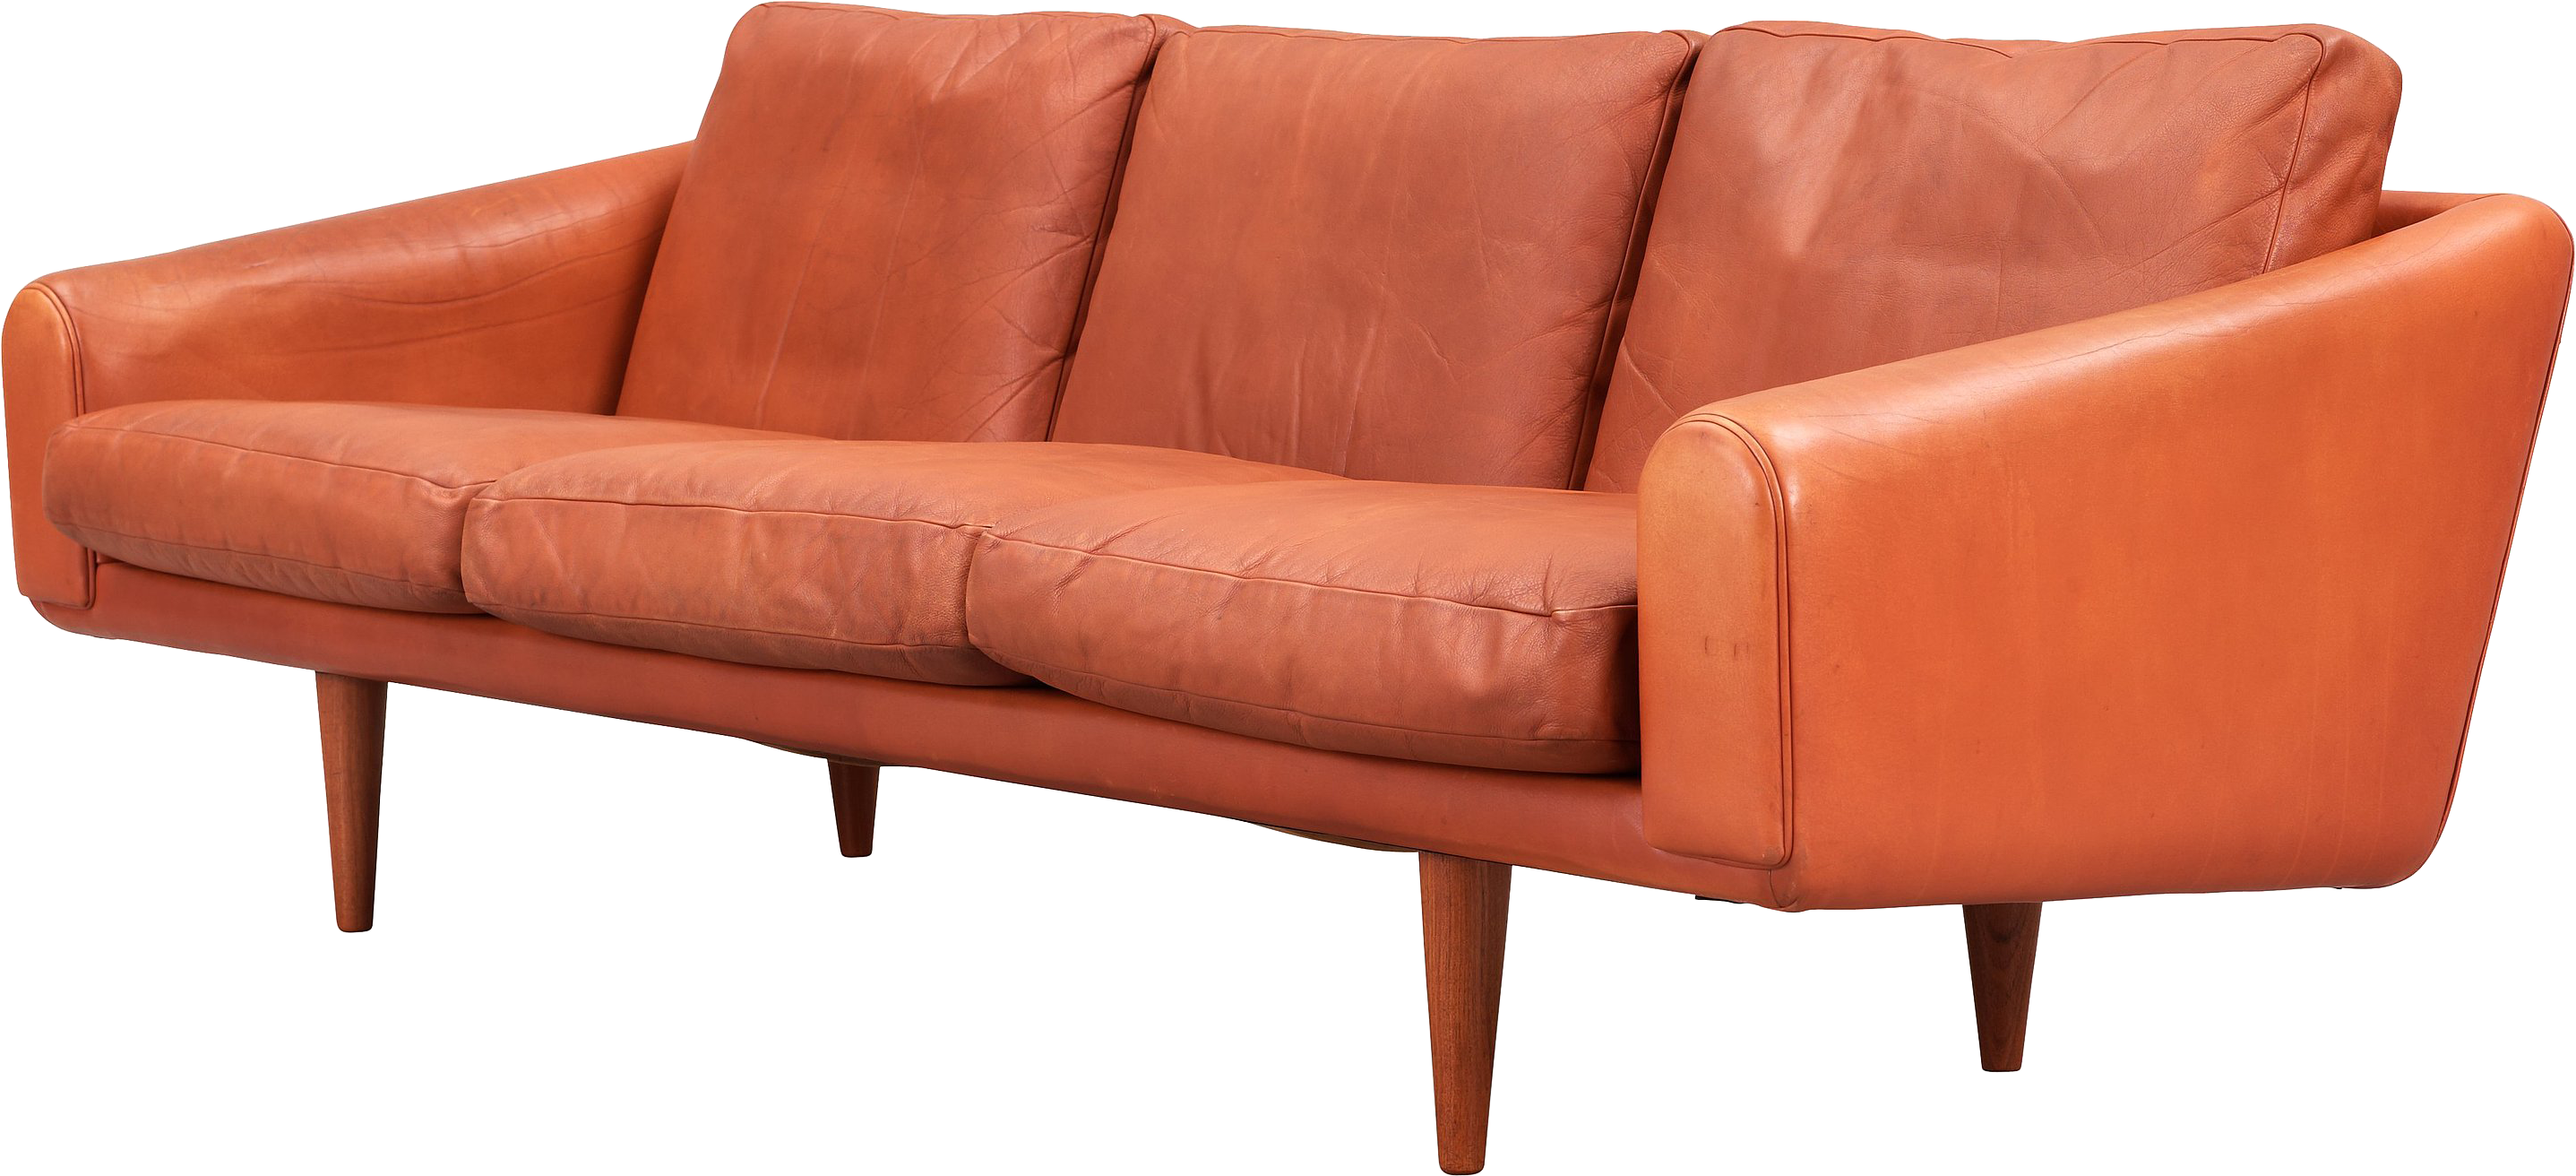 Sofa Icon Web Icons Png